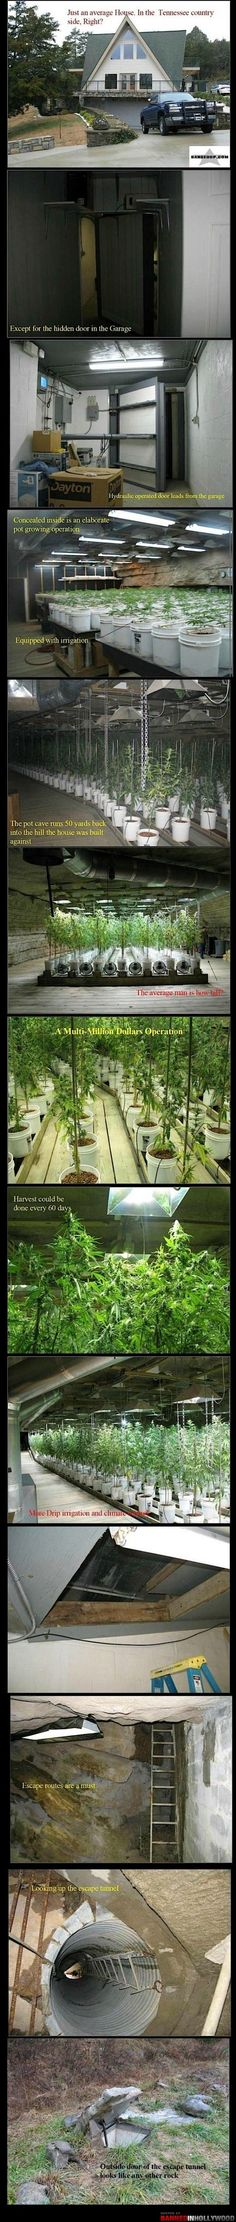 not saying i would want a pot farm... but a secret room... hell yes!